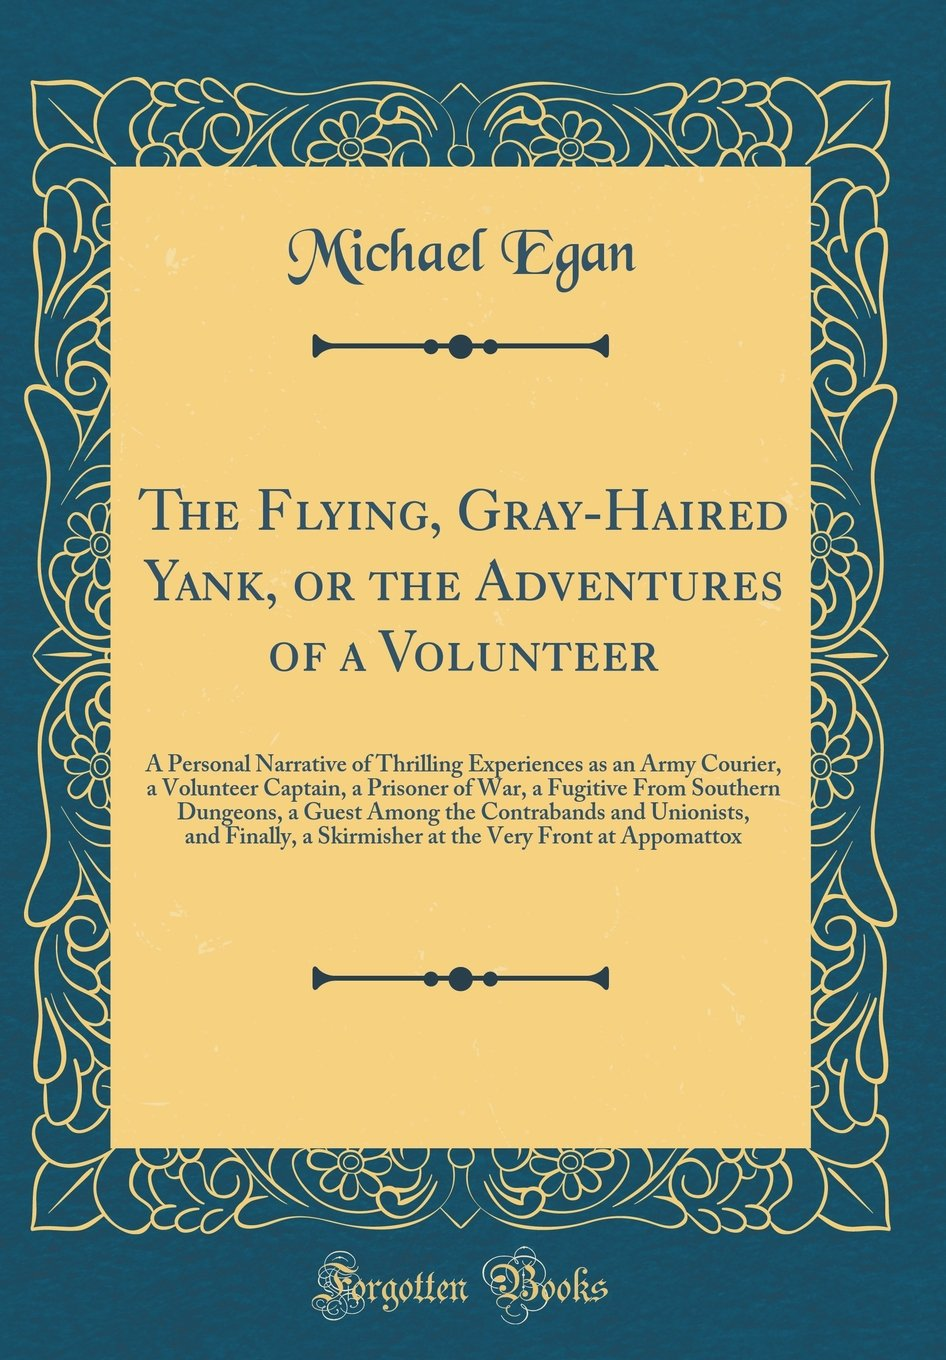 Download The Flying, Gray-Haired Yank, or the Adventures of a Volunteer: A Personal Narrative of Thrilling Experiences as an Army Courier, a Volunteer Captain, ... Among the Contrabands and Unionists, and F ebook